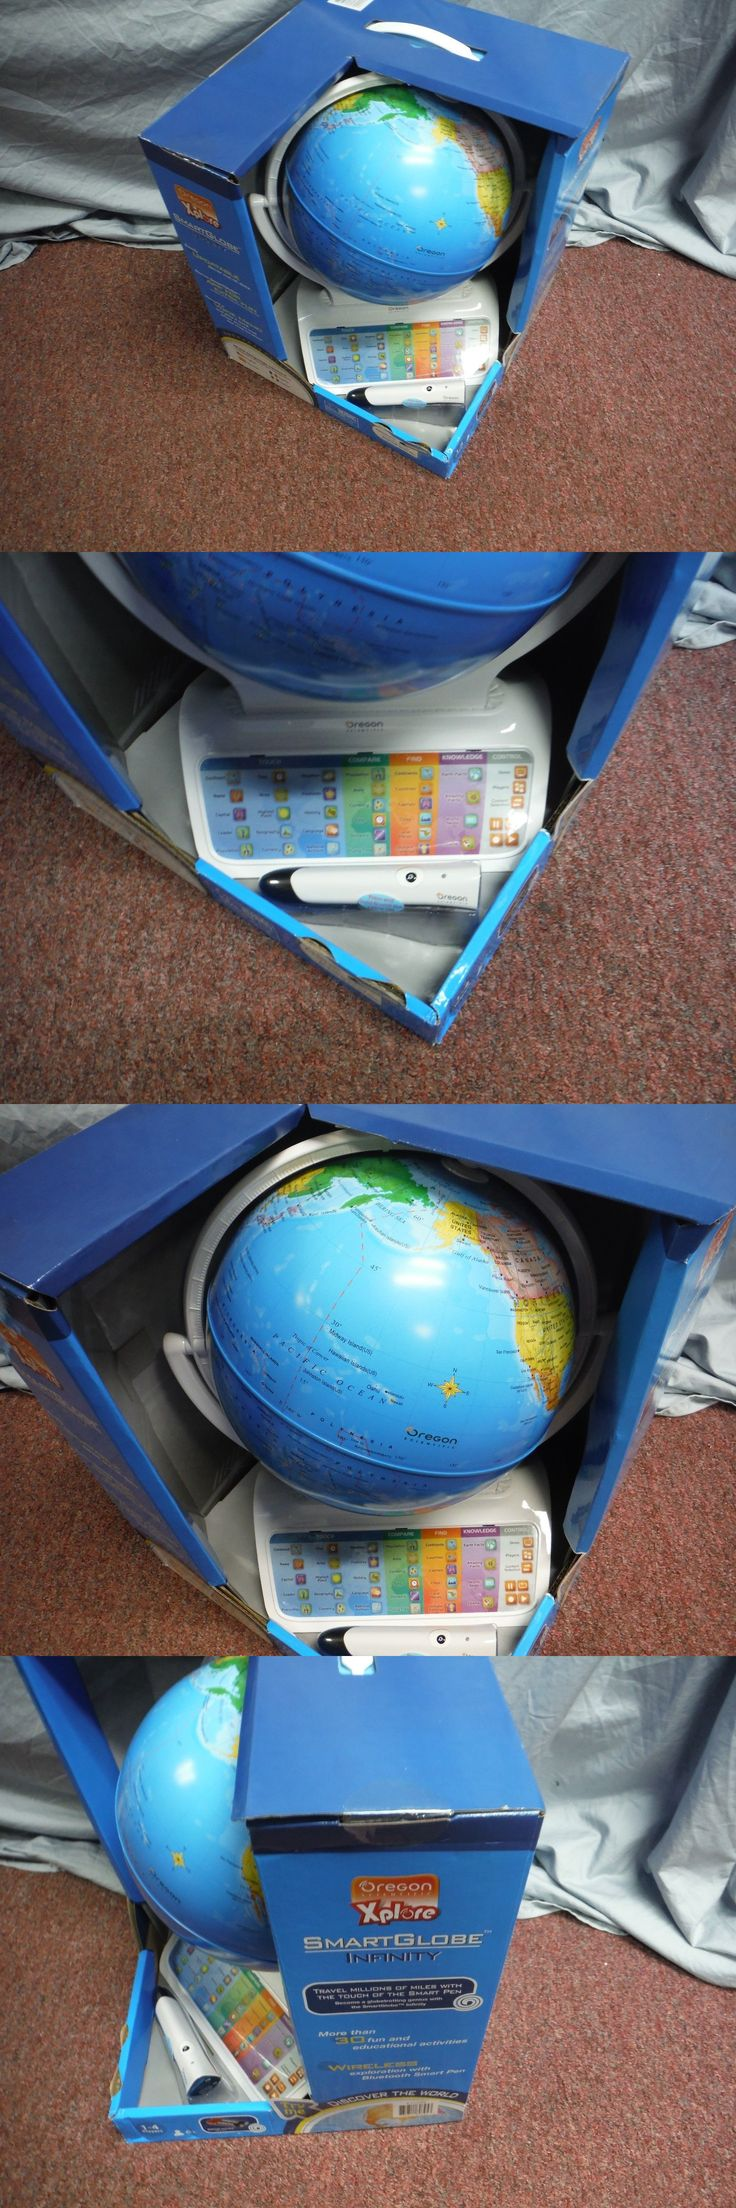 Geography and History 11733: Brand New Oregon Scientific Xplore Smart Globe Infinity With Wireless Pen -> BUY IT NOW ONLY: $66.46 on eBay!